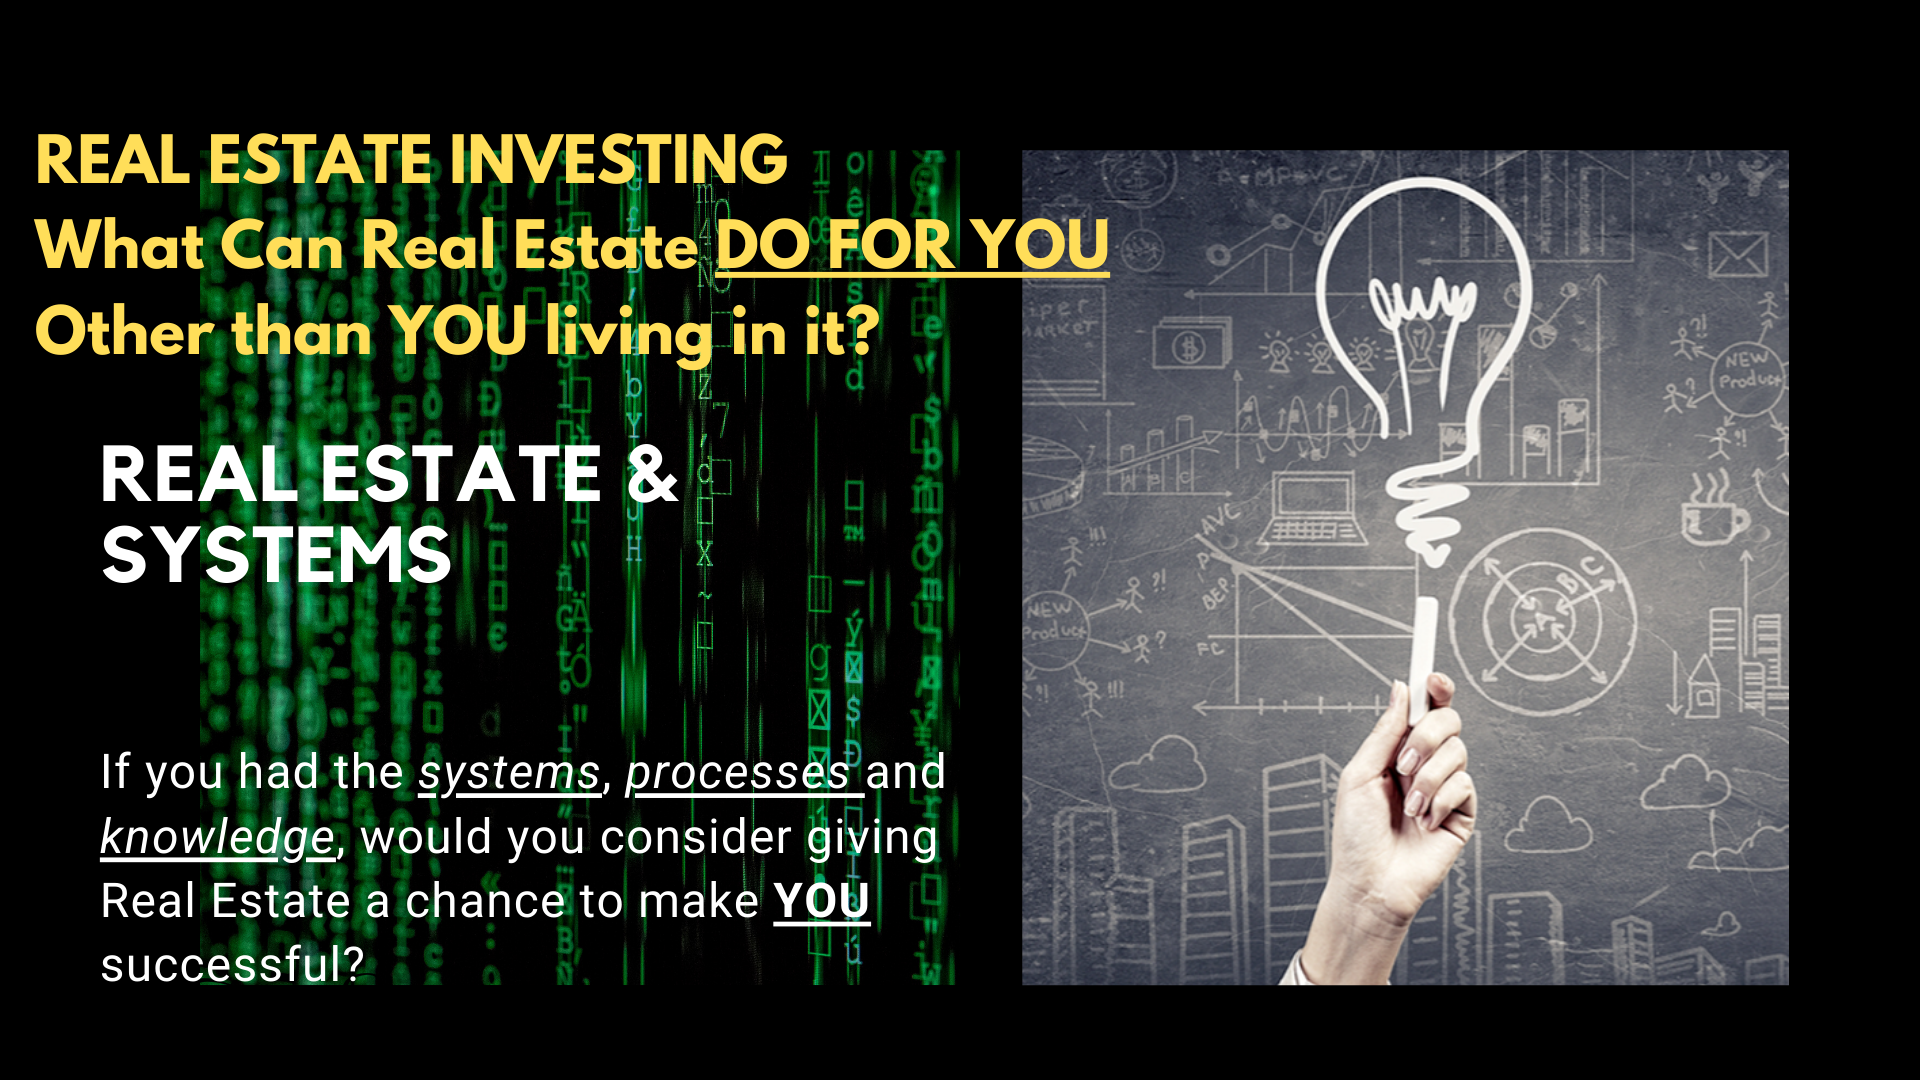 ATLANTA REAL ESTATE INVESTING - SYSTEMS, KNOWLEDGE, and EXPANSION